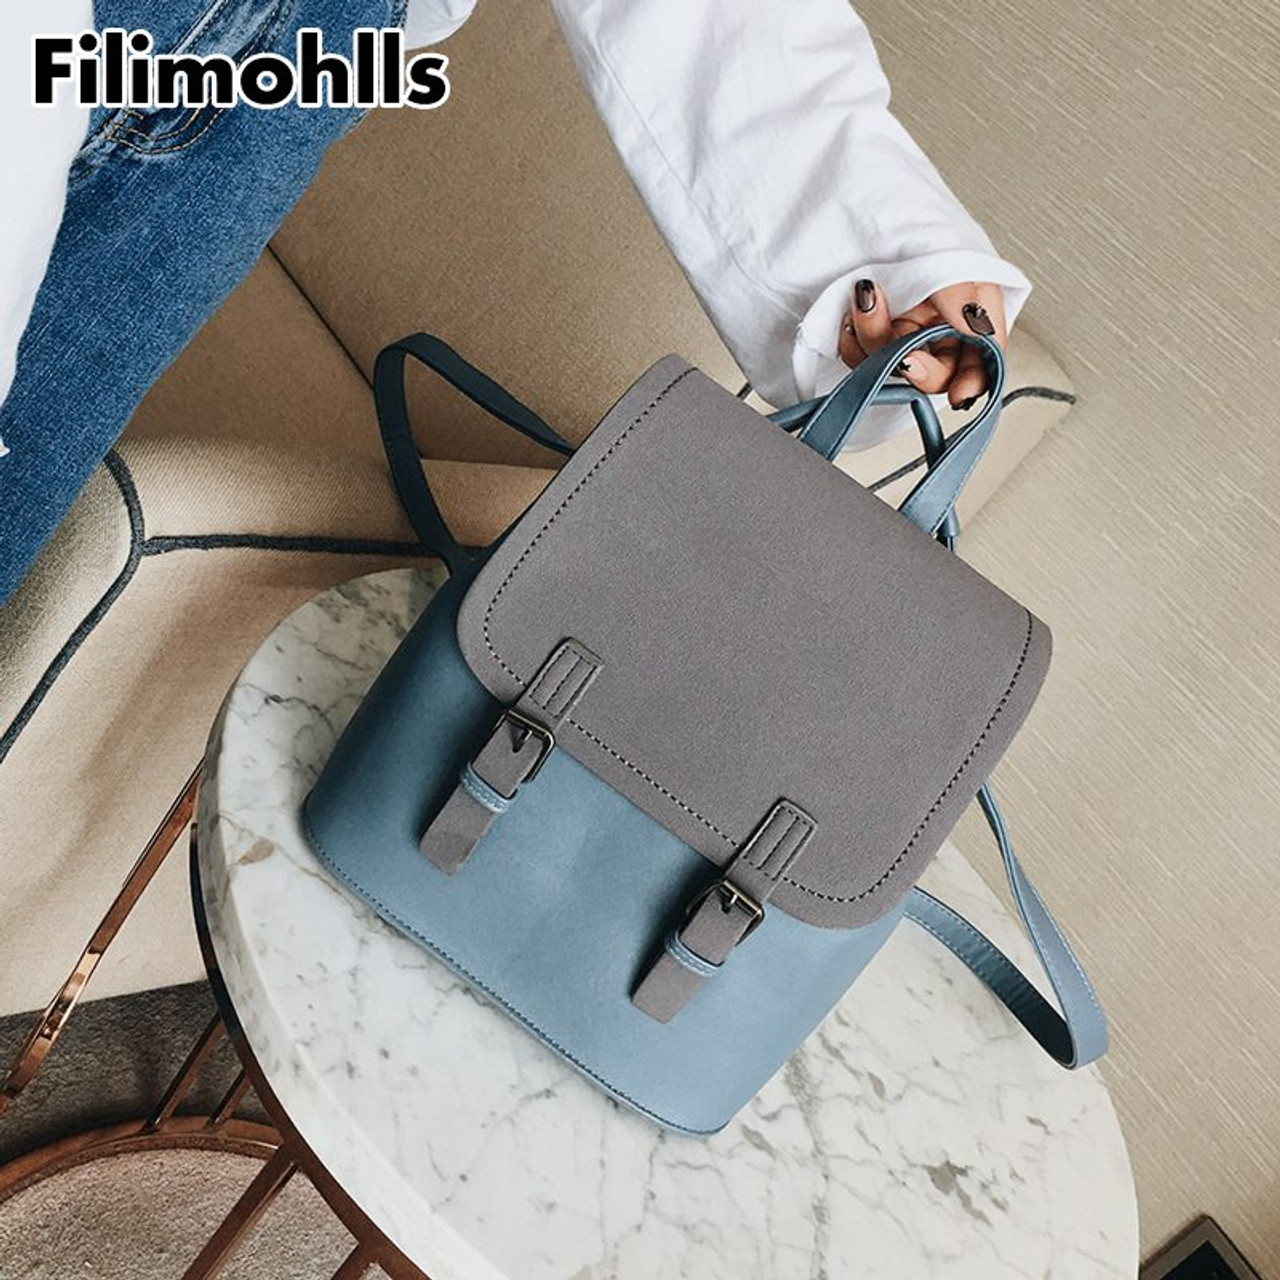 aacac6cdc8 ... Fashion Small School Bags for Girls Black Scrub PU Leather Female  Backpack Sac A Dos 2018 ...